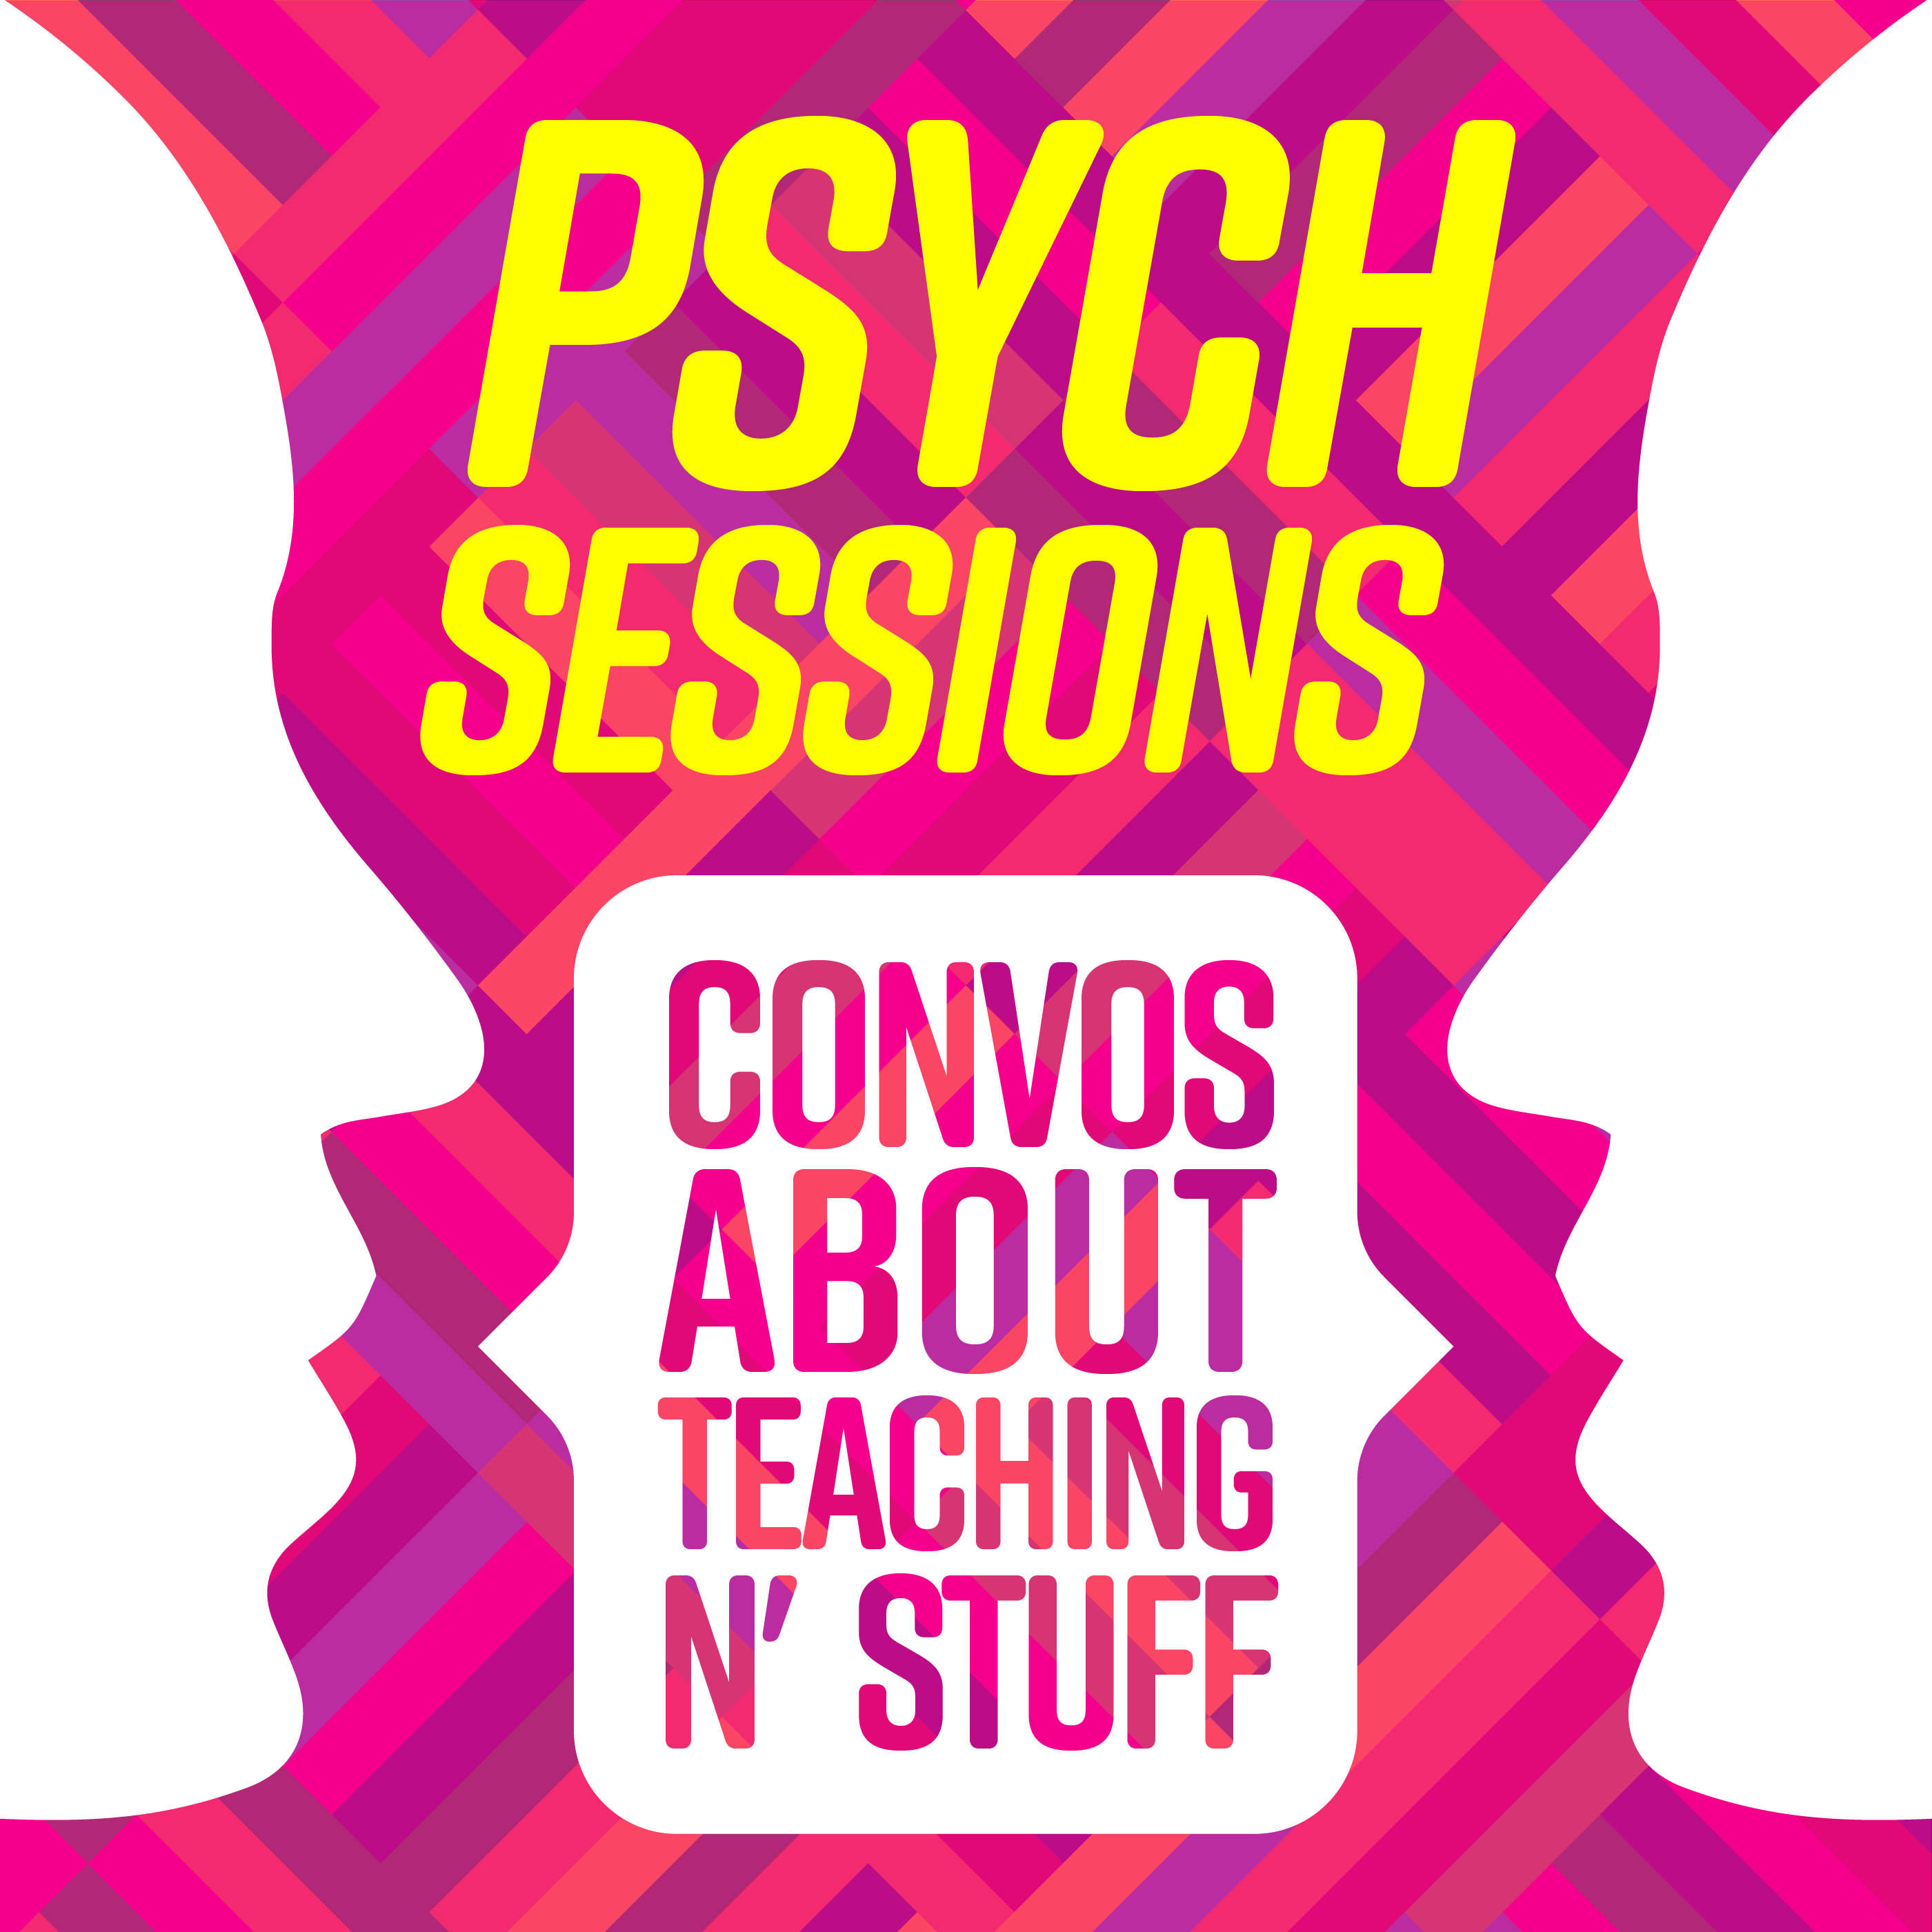 PsychSessions: Conversations about Teaching N' Stuff show art